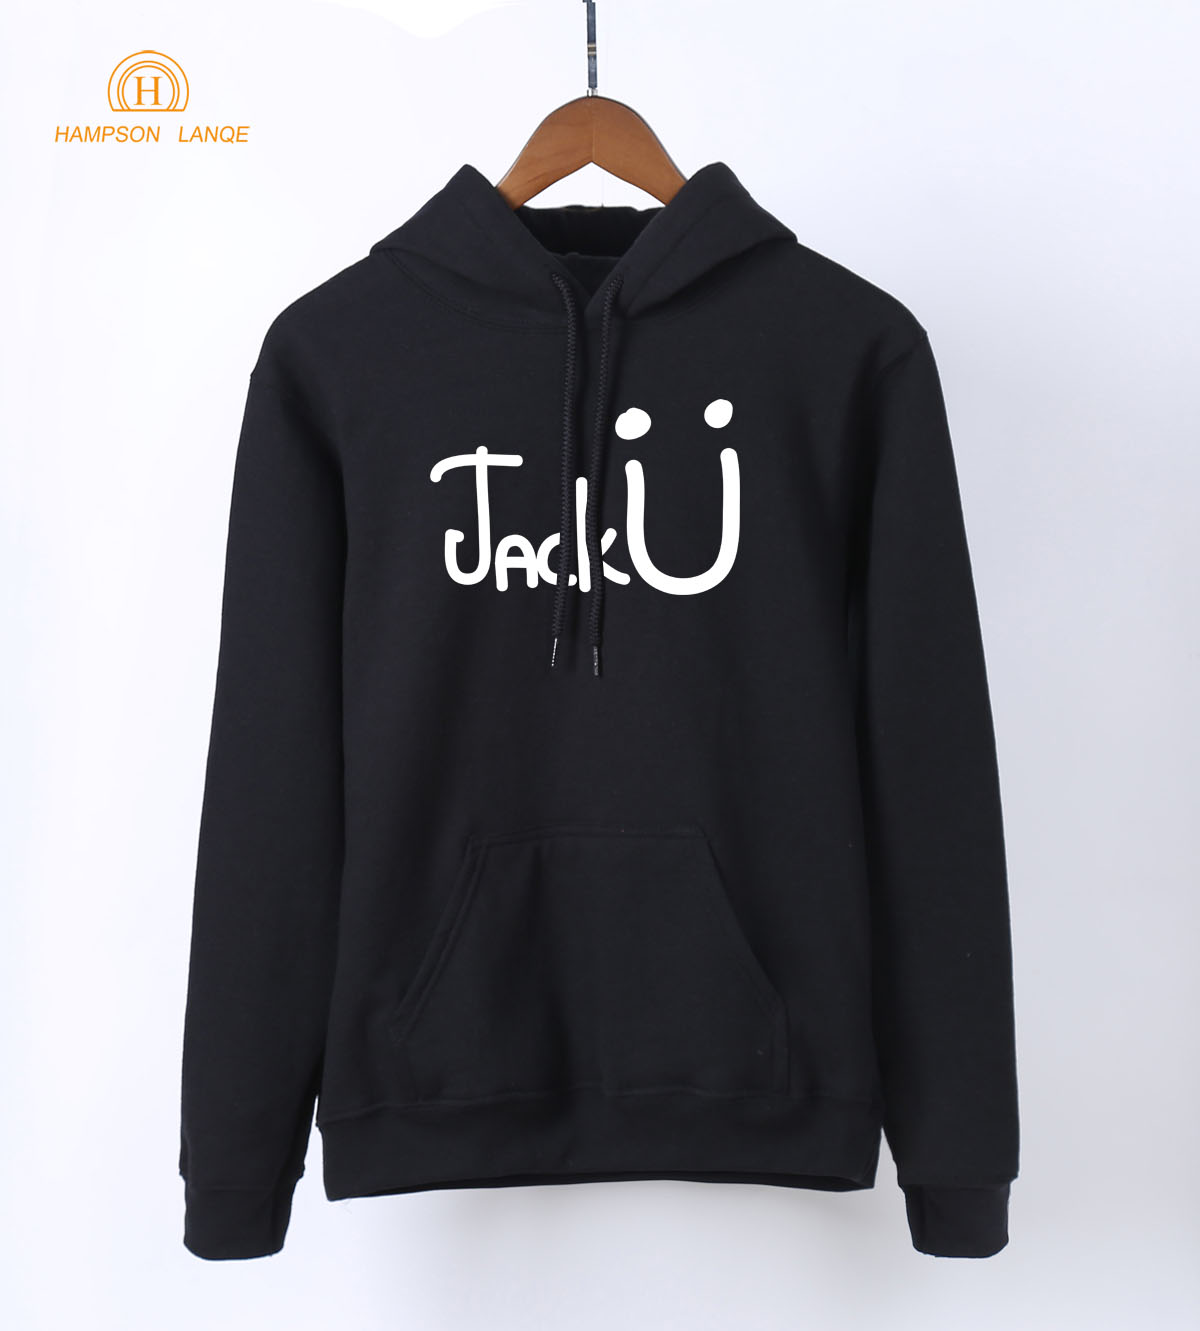 HAMPSON LANQE Famous Band Jack U Fashion Women Hoodies 2018 Spring Autumn Warm Fleece Sweatshirts Hip Hop Hoodie For Fangirl